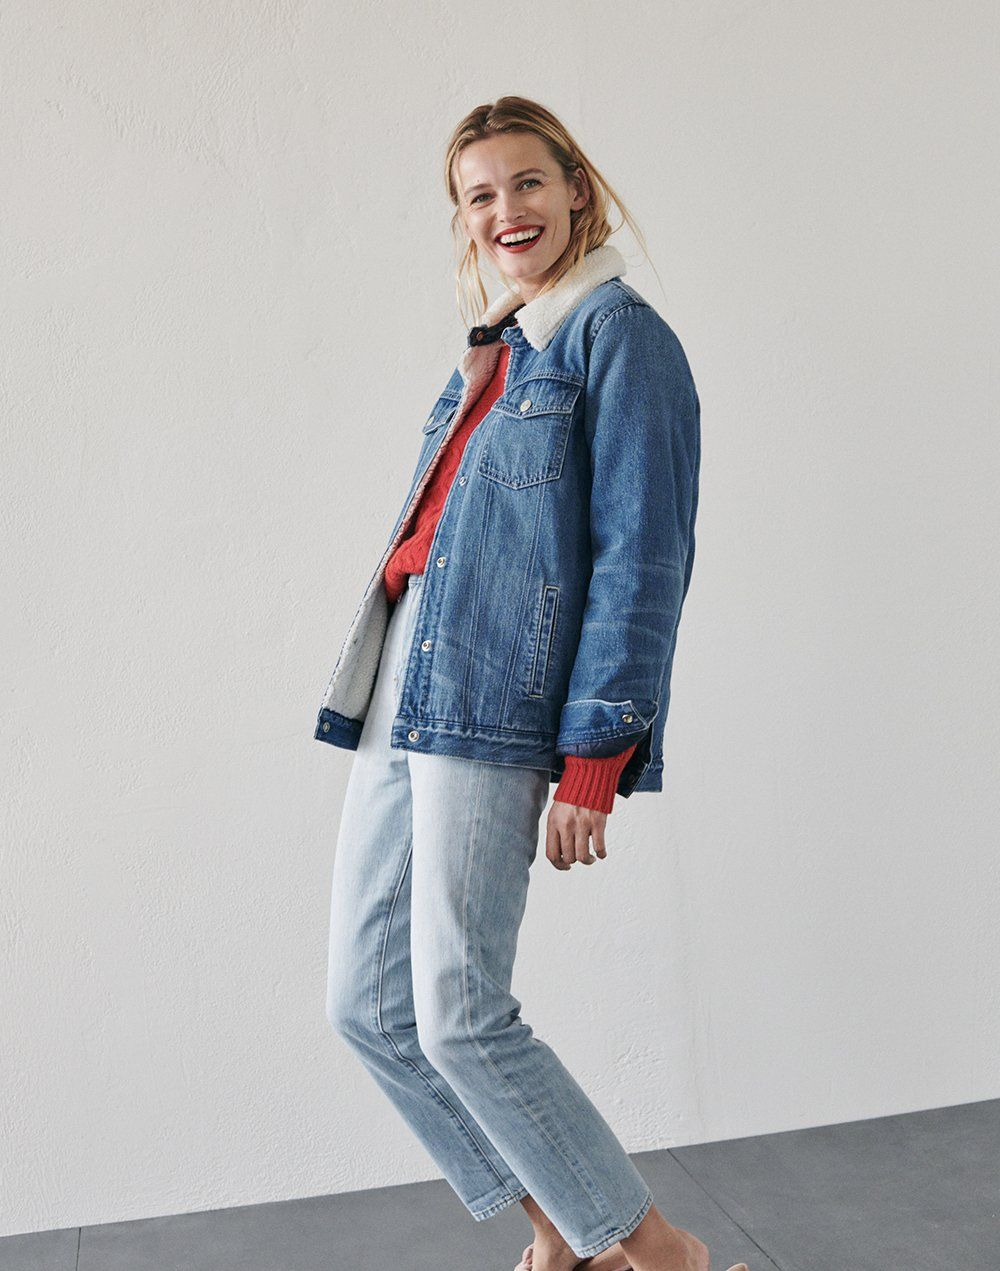 madewell oversized jean jacket  sherpa edition worn with copenhagen cable  sweater + the perfect vintage jeans. 7a841ff5ee